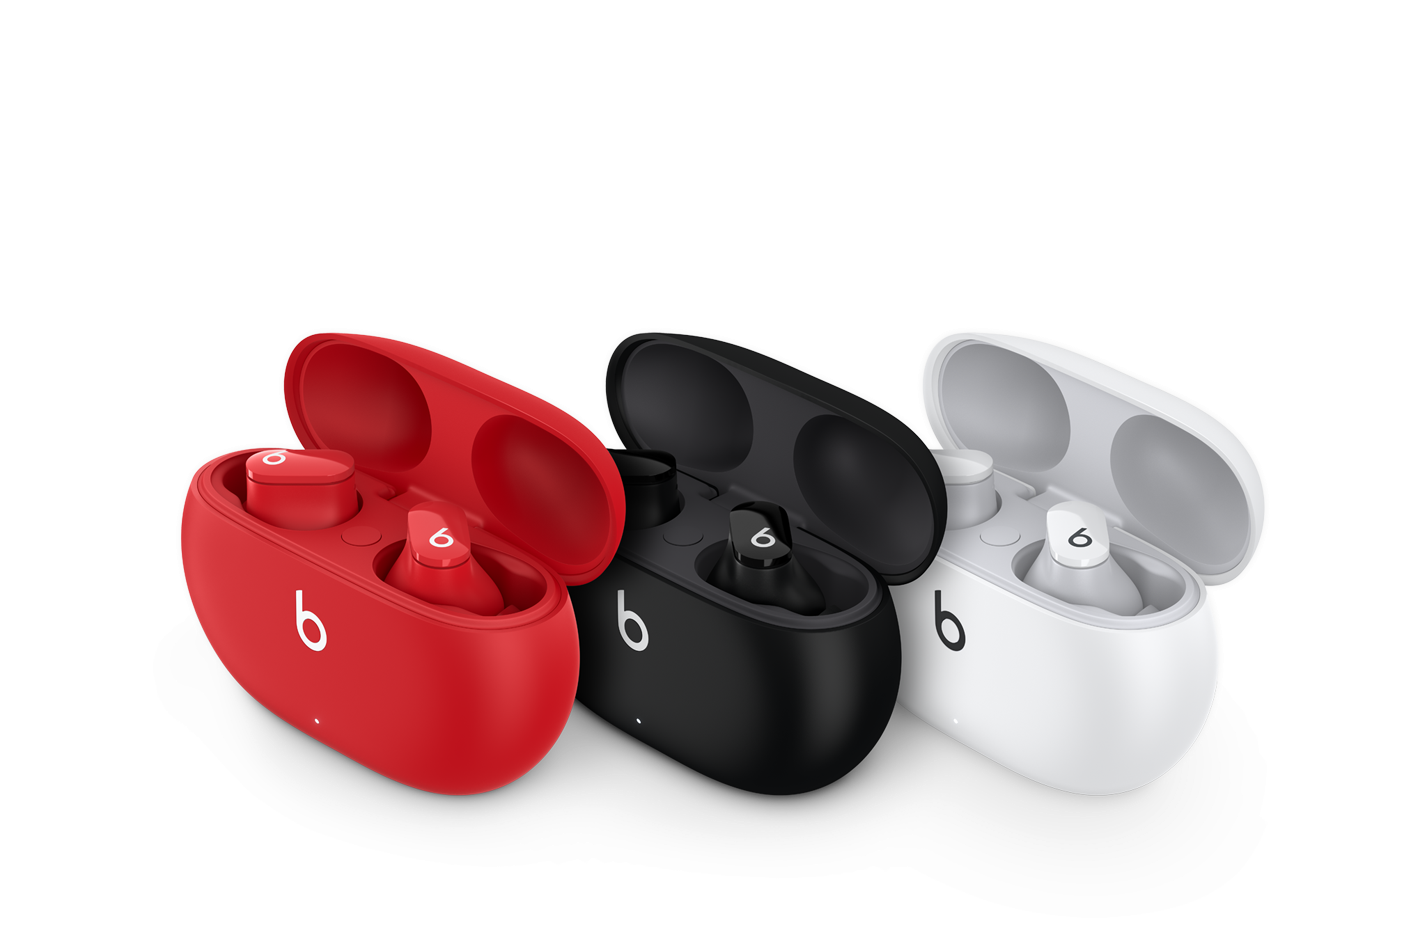 Beats by Dr. Dre Featured - Apple